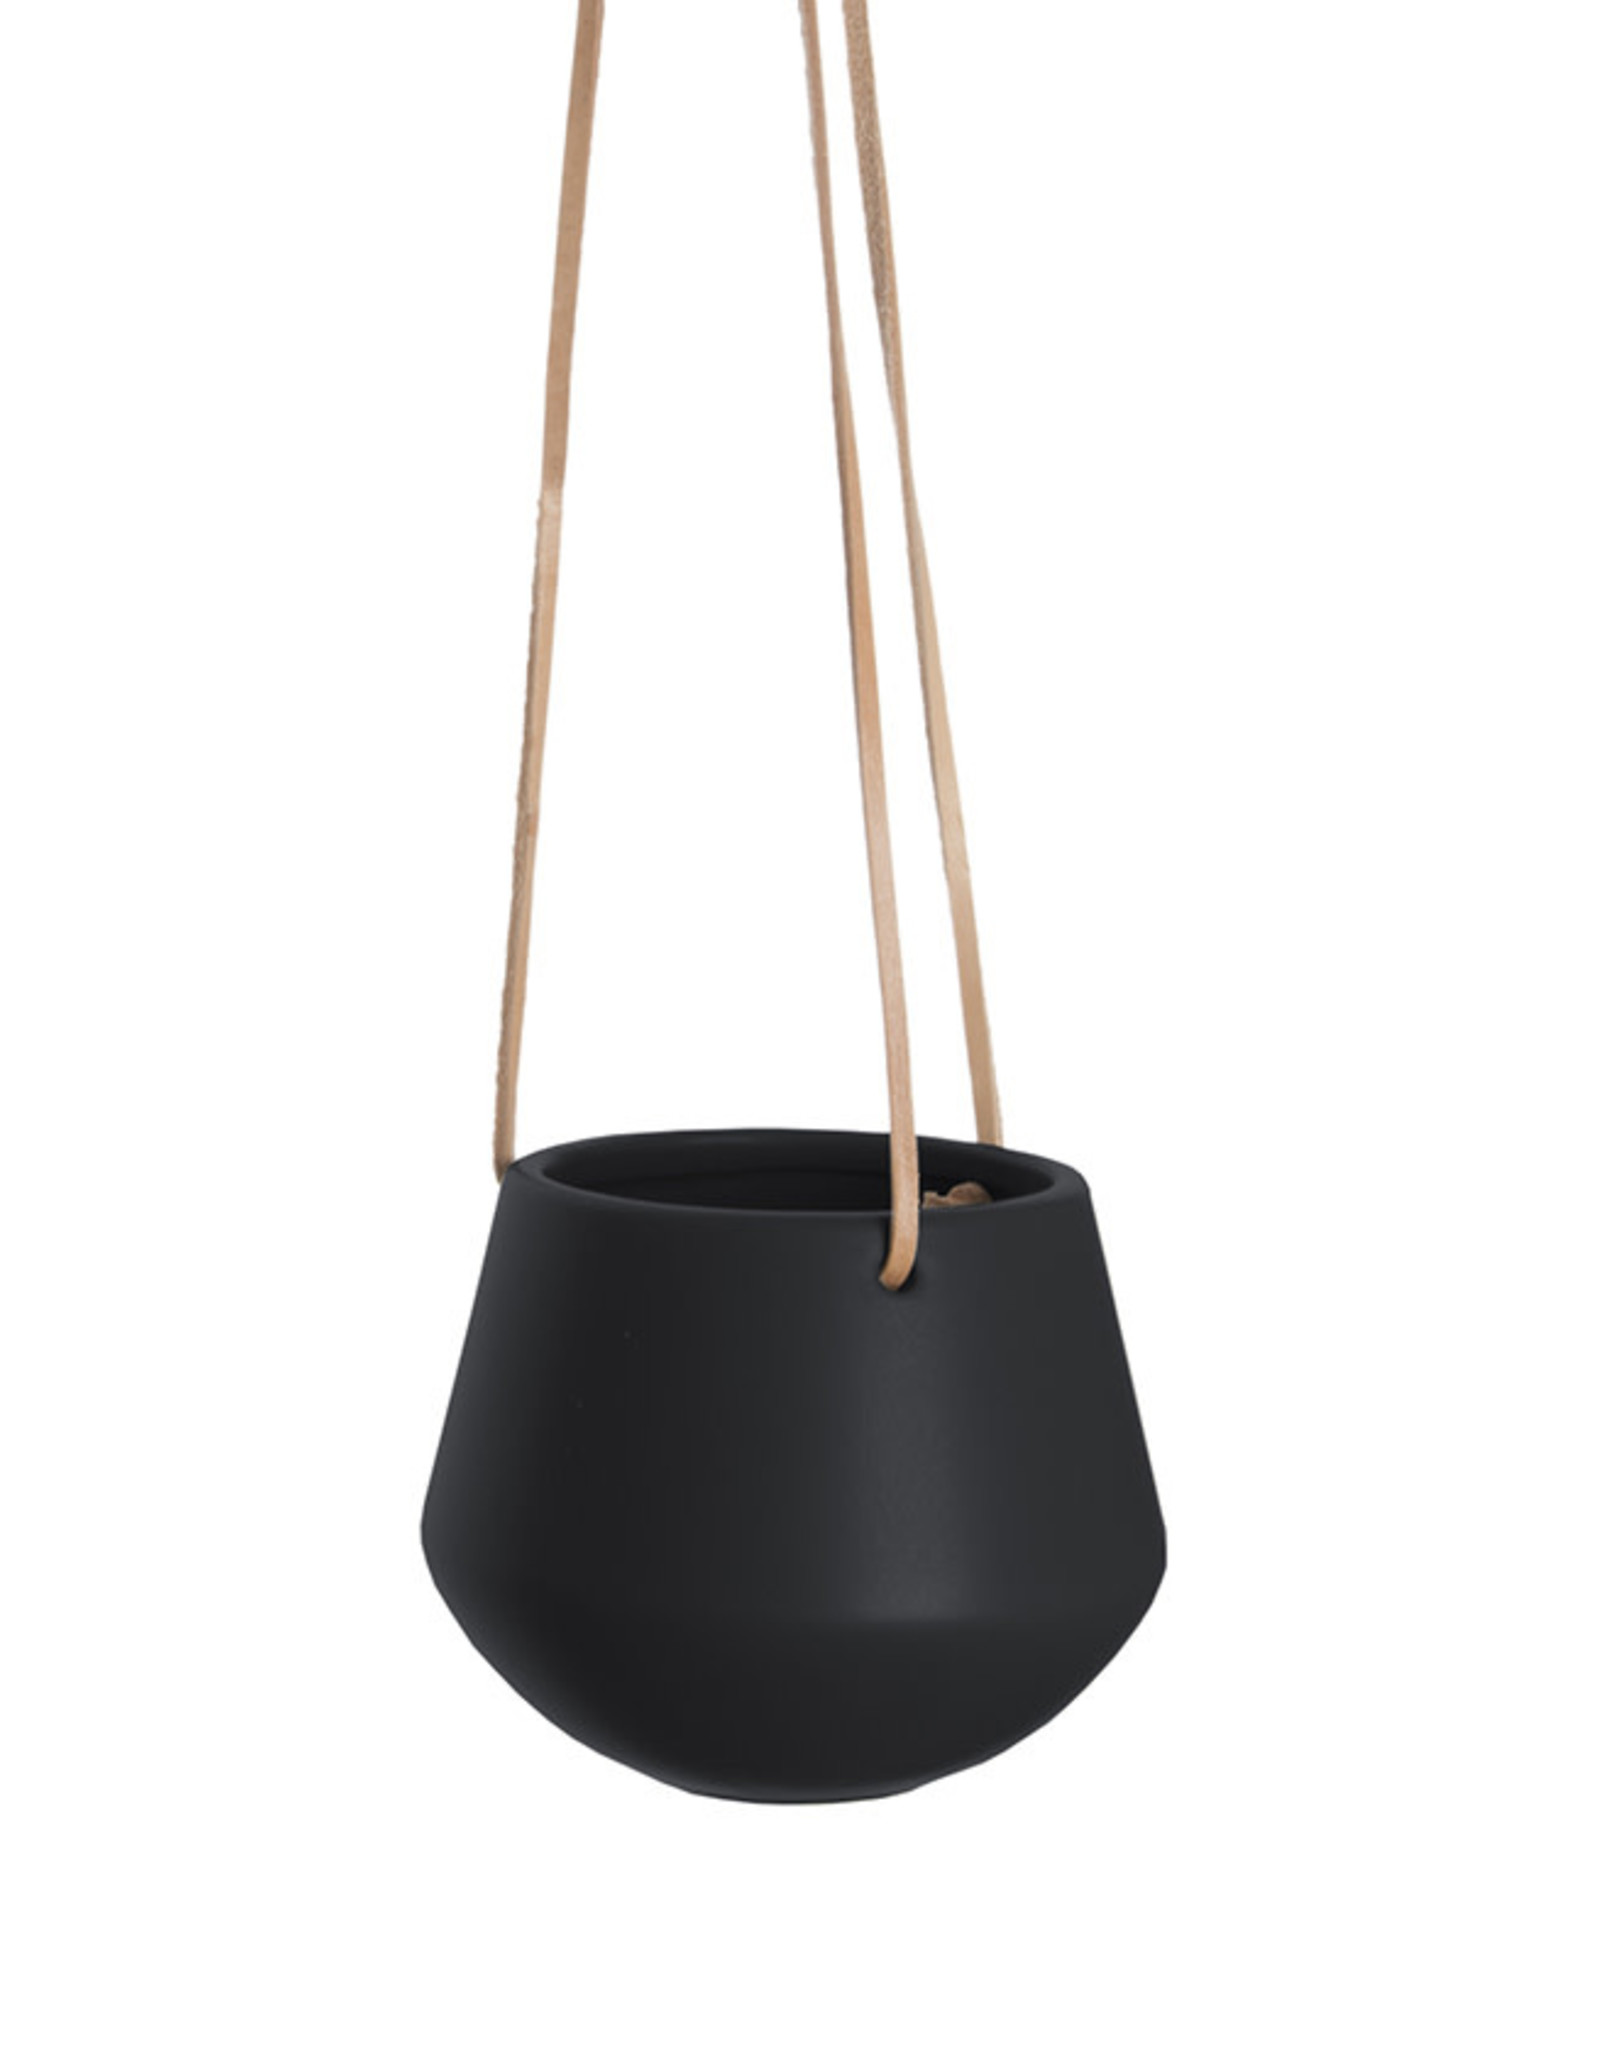 Hanging pot Skittle SMALL-black